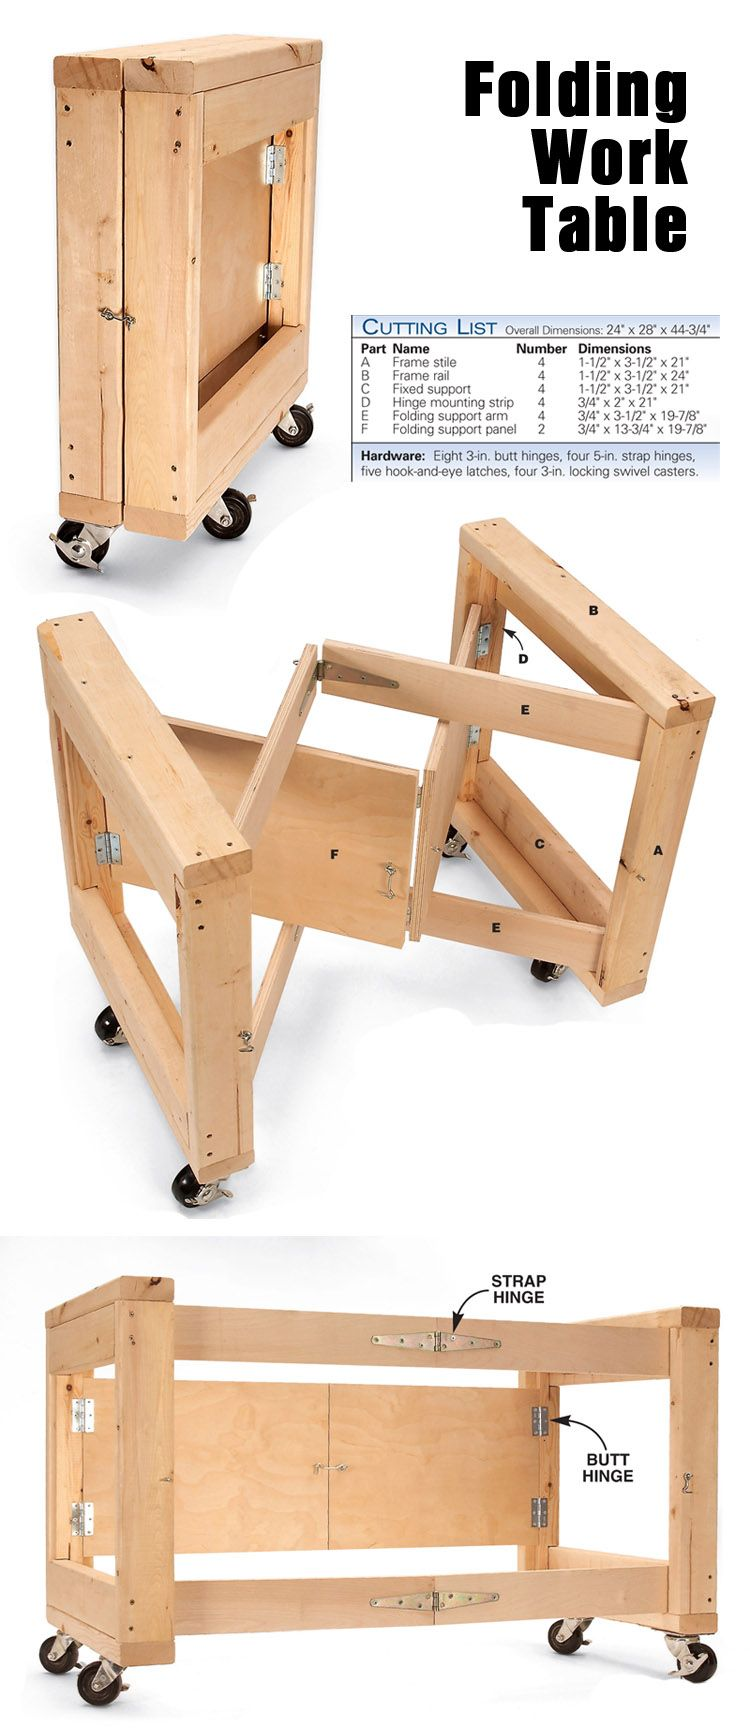 Folding cutting table - Space Saving Folding Work Table Http Www Popularwoodworking Com Projects